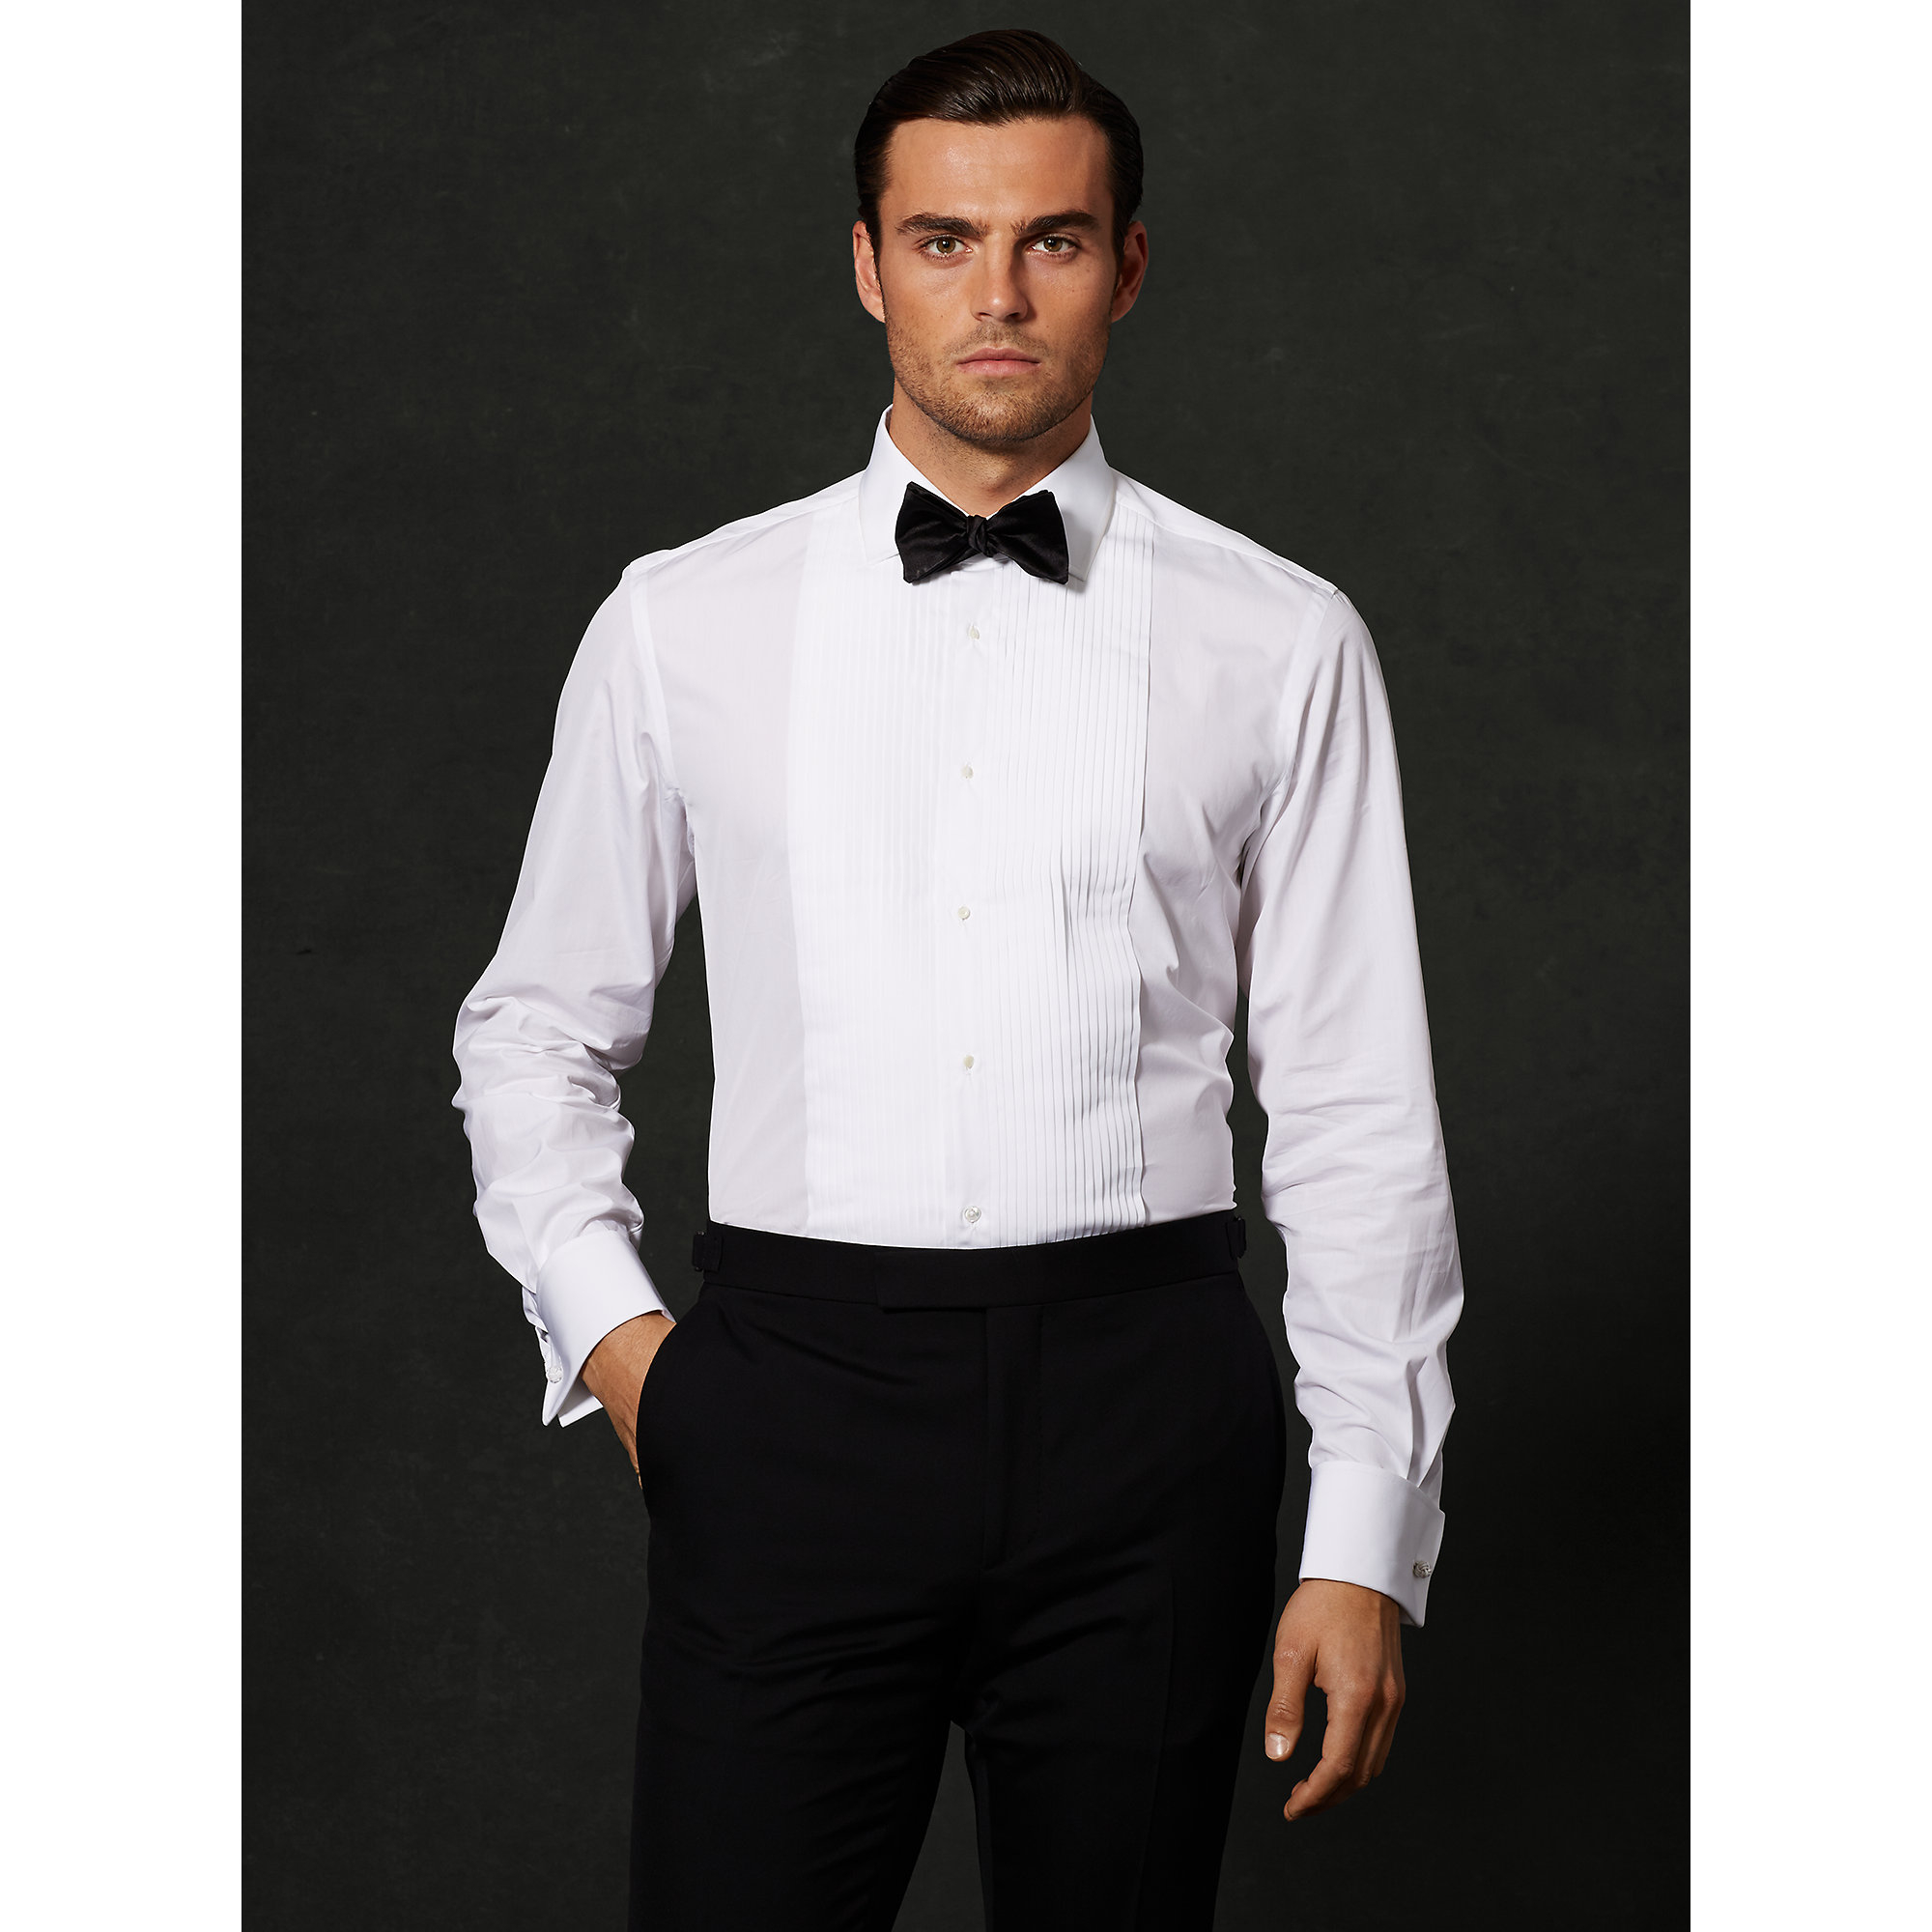 This fine tuxedo is ideal for those who prefer a slimmer cut. This Tailored Fit suit is wrinkle, water, and stain resistant. Woven in natural stretch wool for refined comfort. Satin lapel, covered button, and details. Single breasted notch lapel with single-button closure. Quarter-top pockets. Comfort-range waistband with self-adjusting stretch for ease.